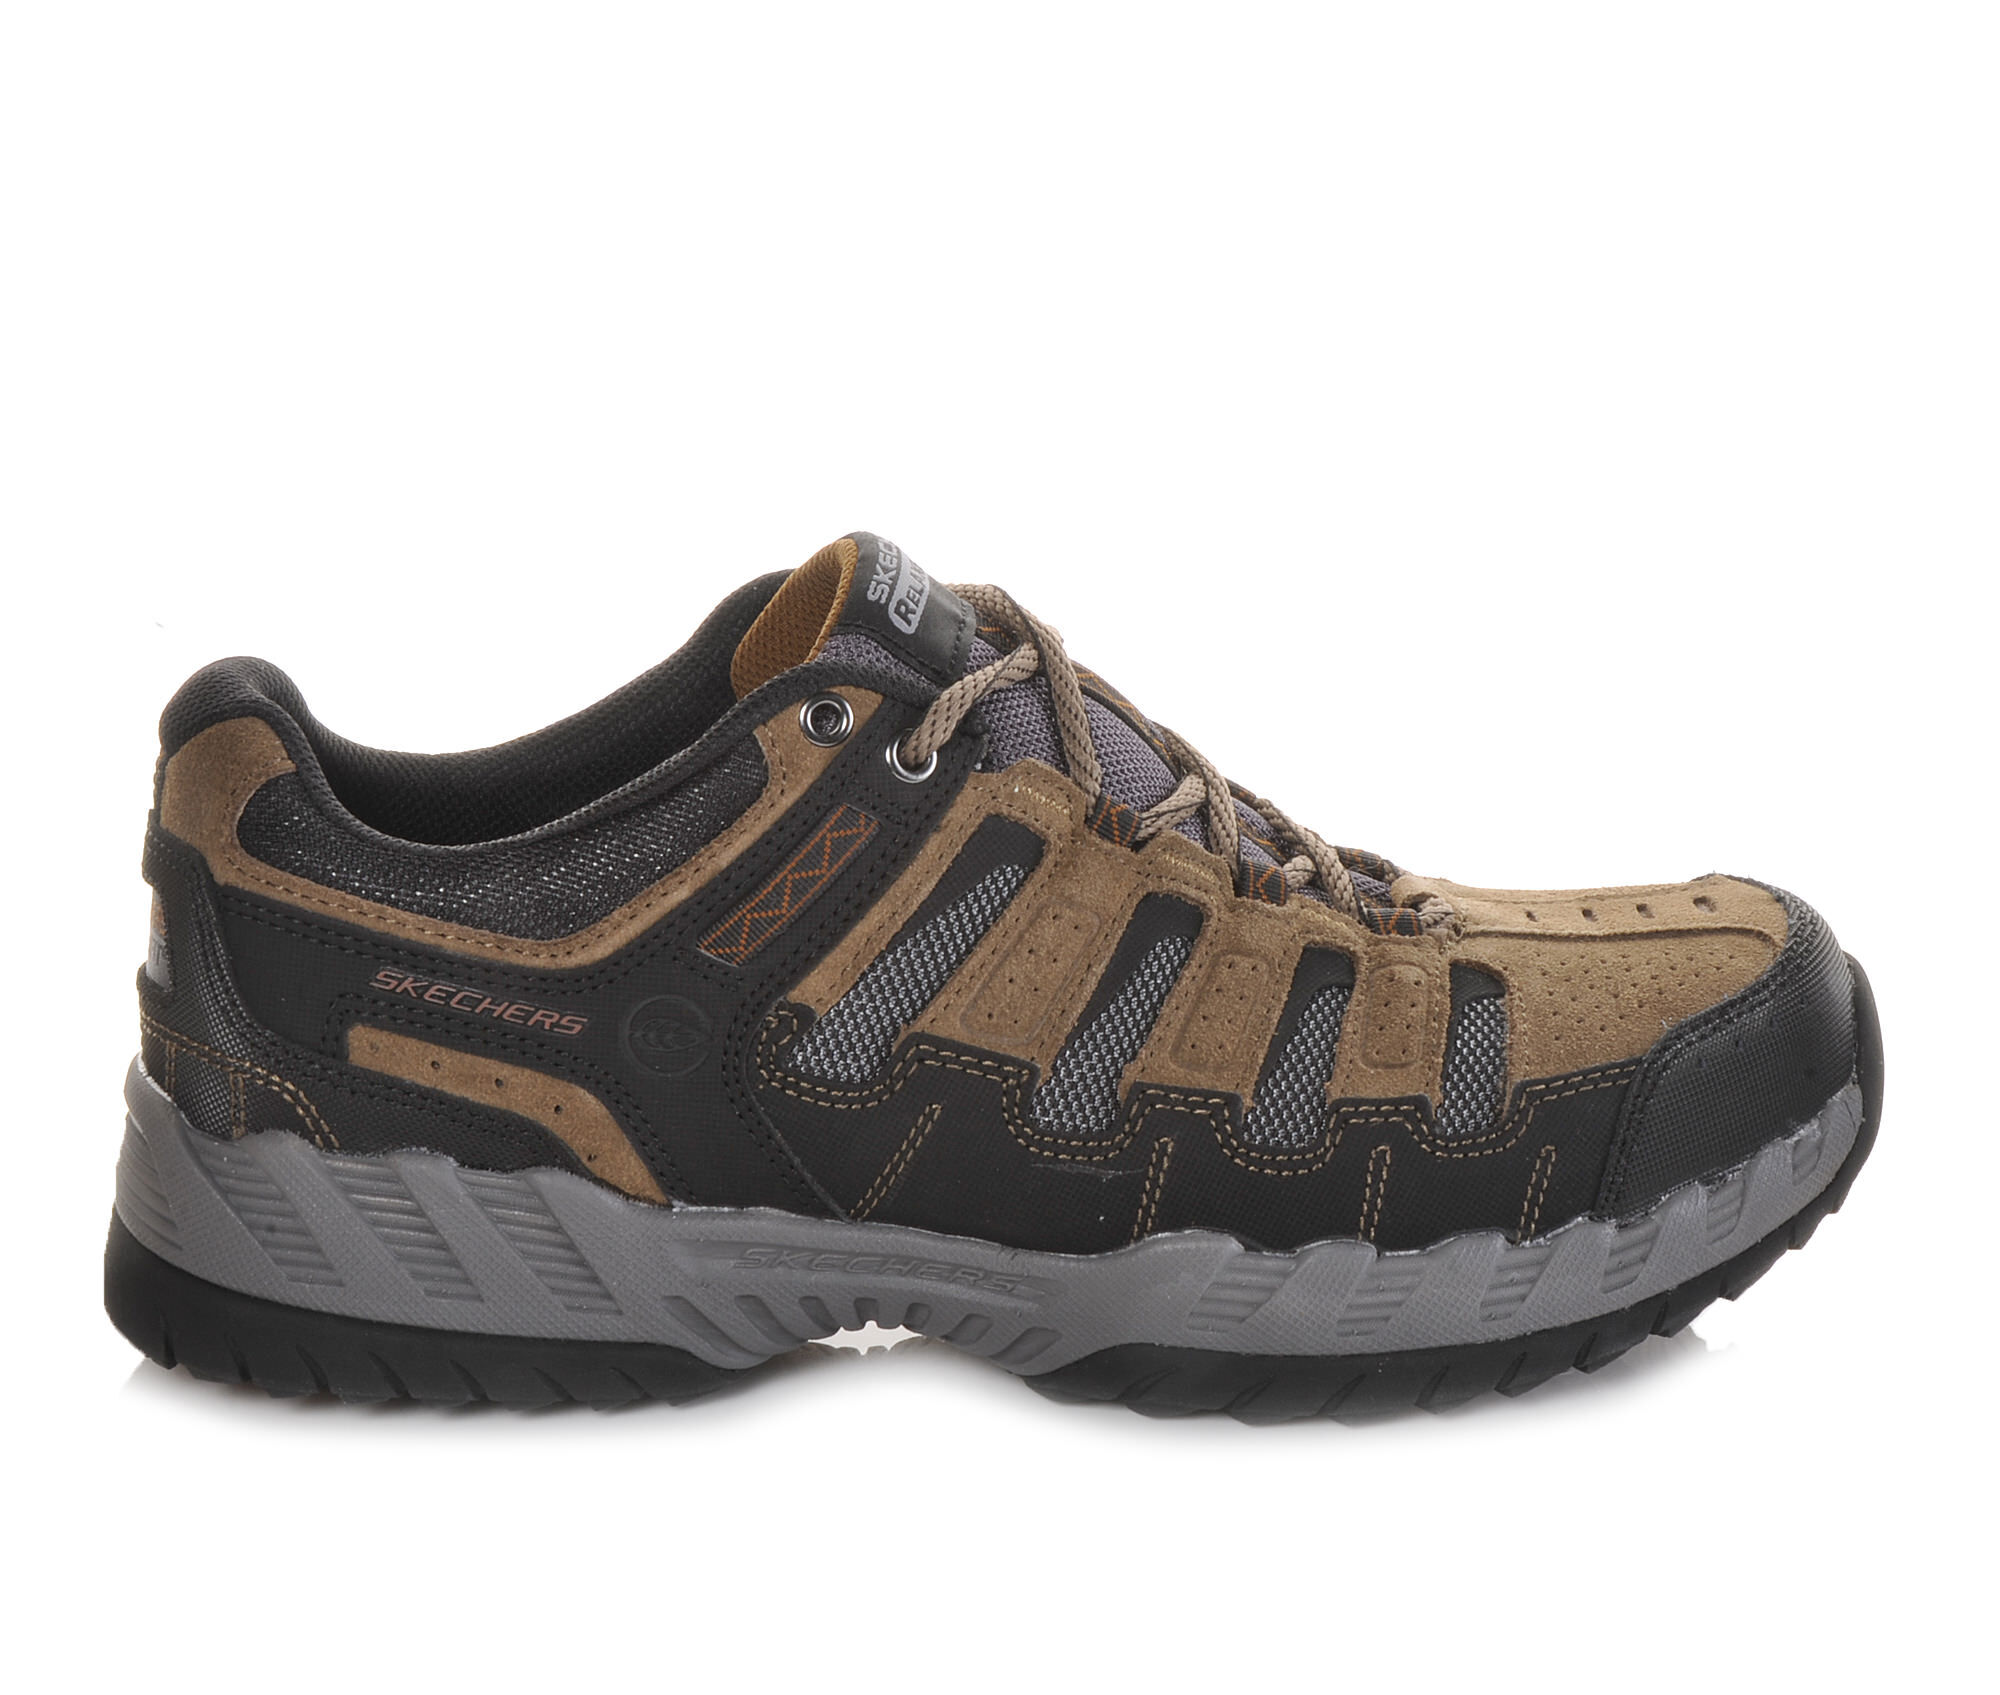 Skechers Shoes Skechers Thrill Seeker Relaxed 51384 Mens Sports Shoes Brown/Black